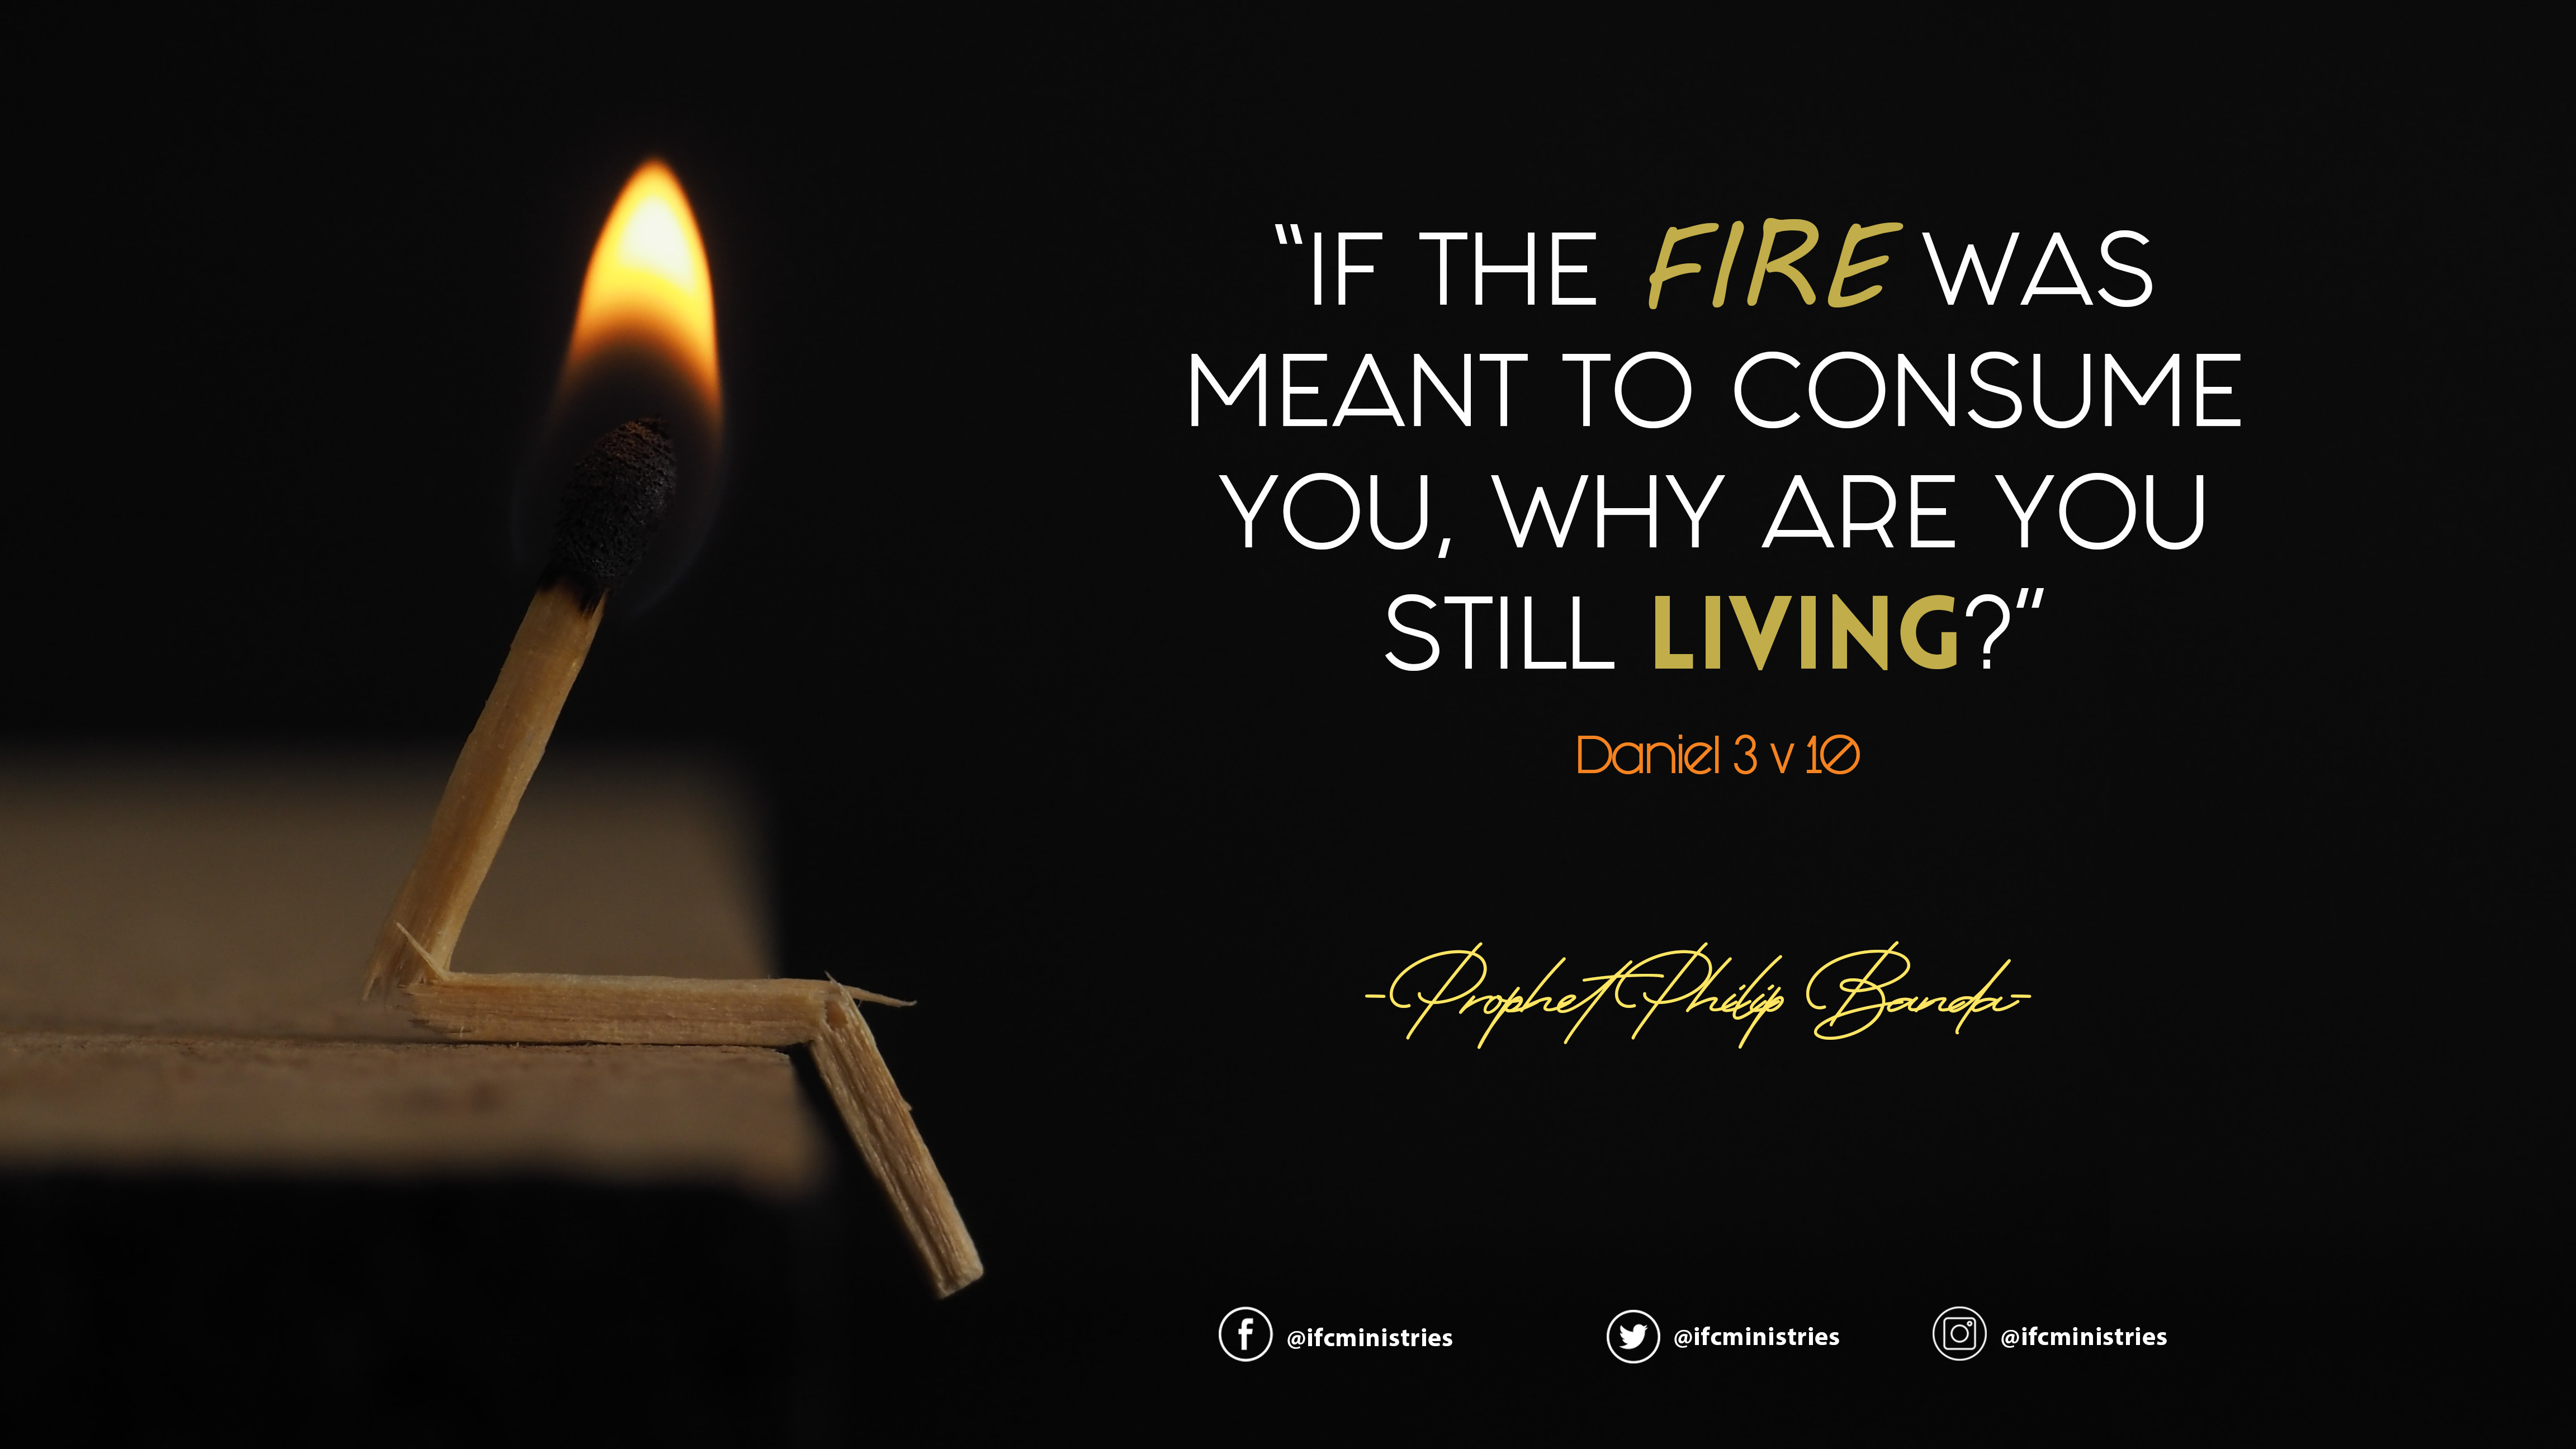 """If the fire was meant to consume you, why are you still living.jpg"